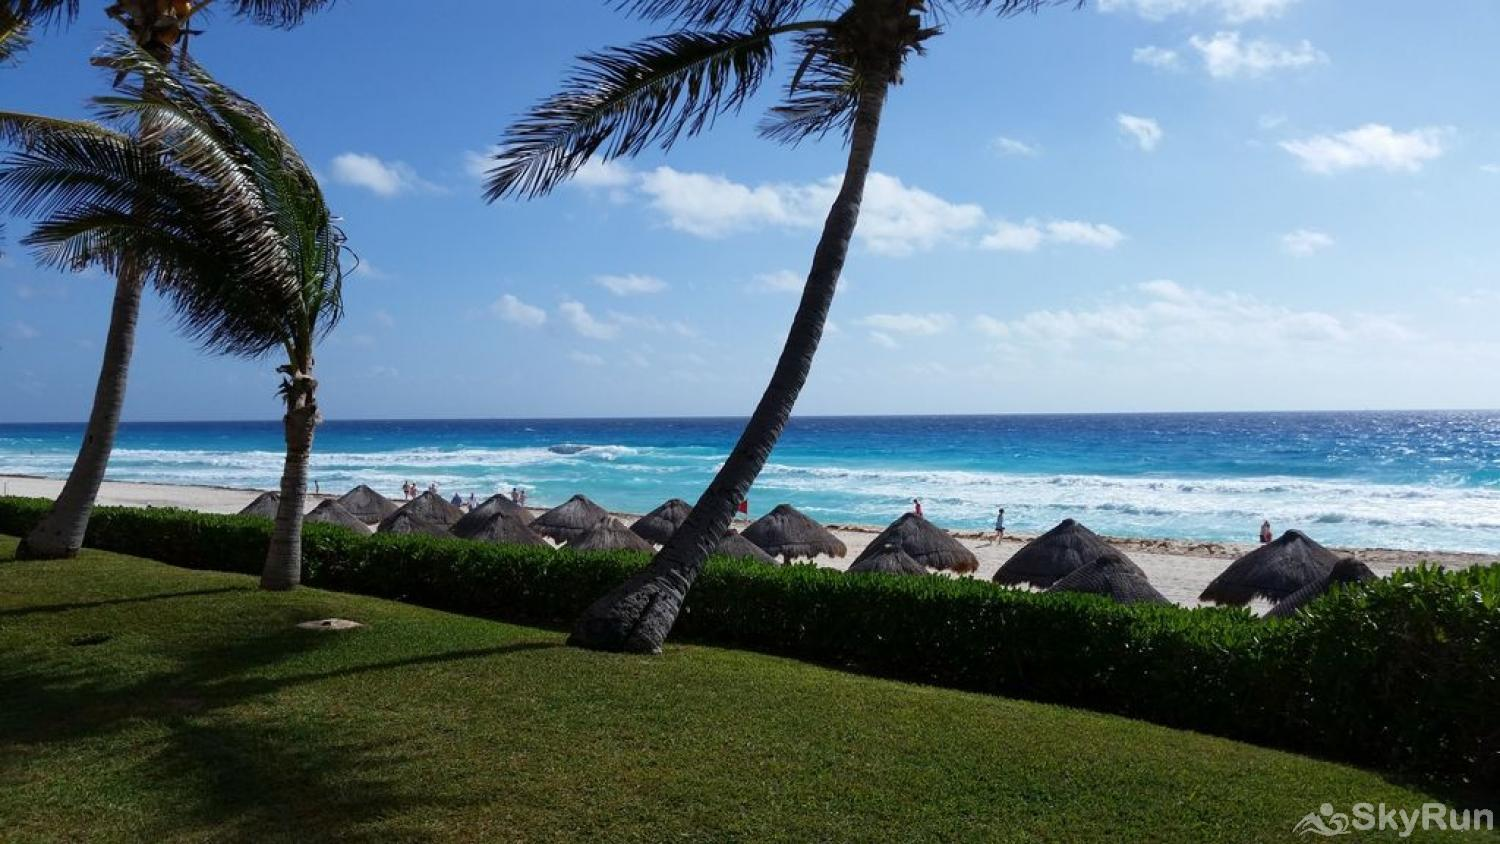 New Hotel Room Cancun Beachfront besides Private Villa , at Omni Resort Kinich Villa 33 Beach garden view